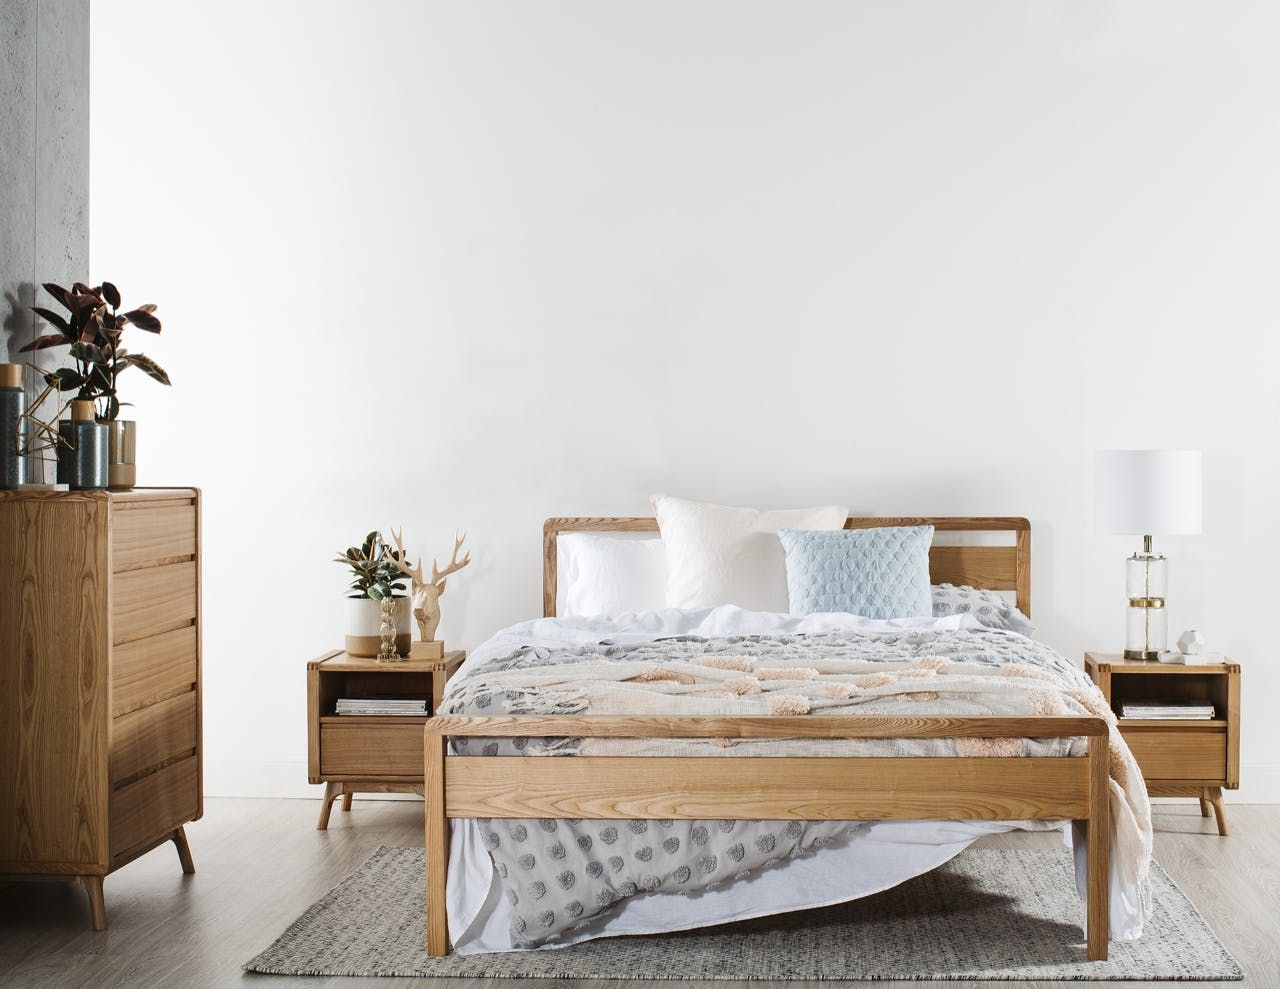 Denmark Bed Frame in 2020 Scandi bedroom, Timber bed